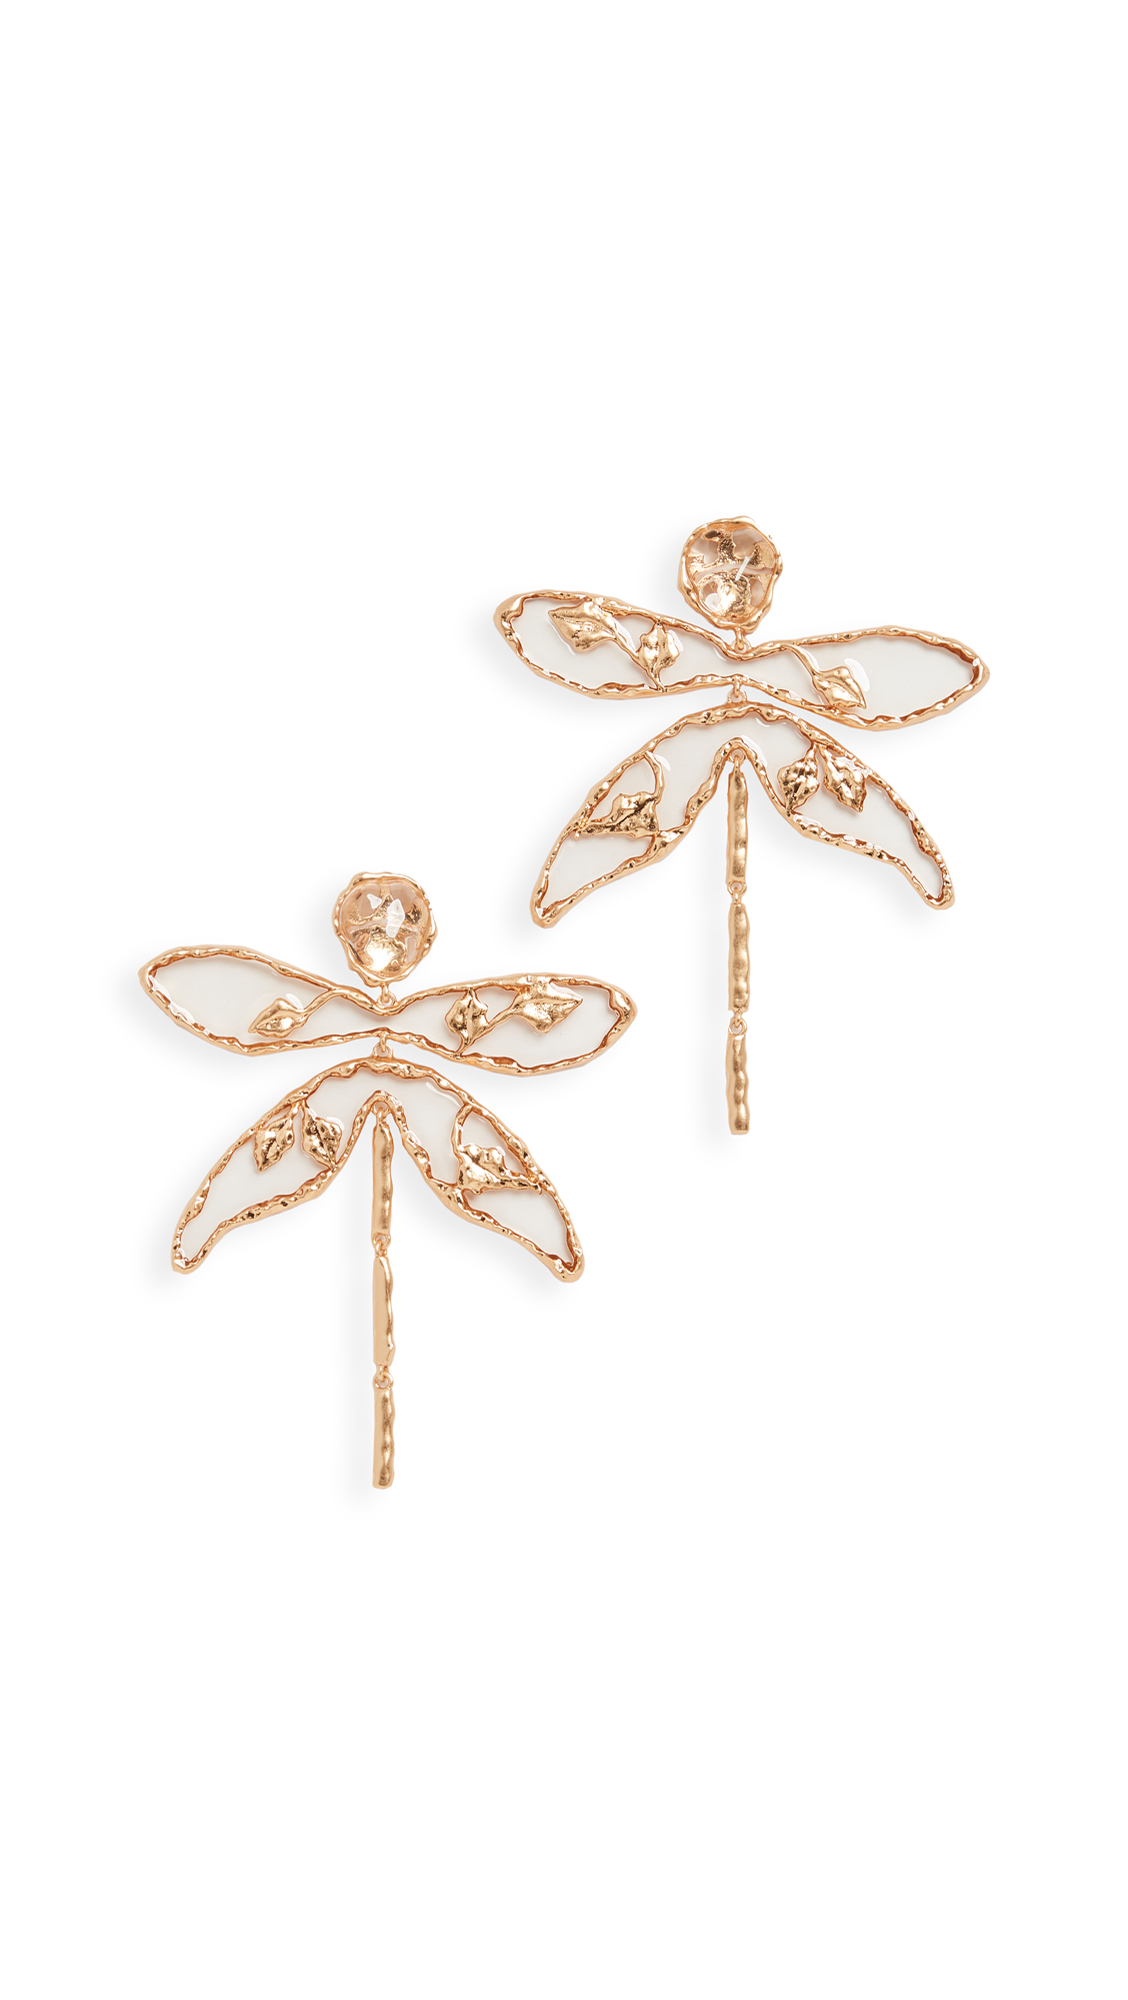 Tory Burch Dragonfly Earrings